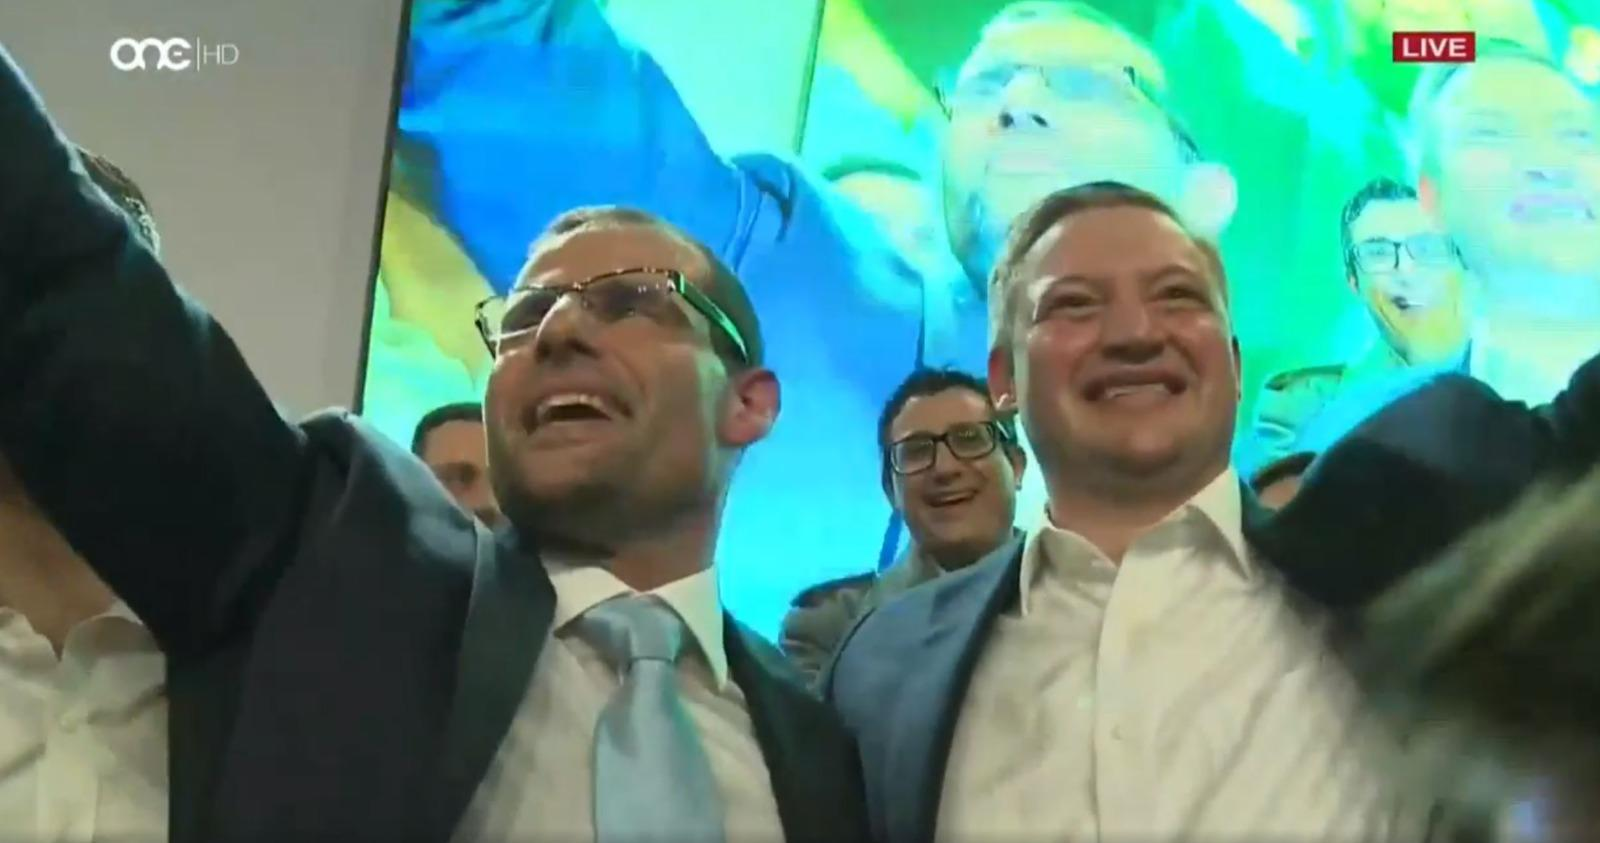 Robert Abela and Konrad Mizzi smile and wave ahead of Abela's first speech as Labour leader in January 2020.